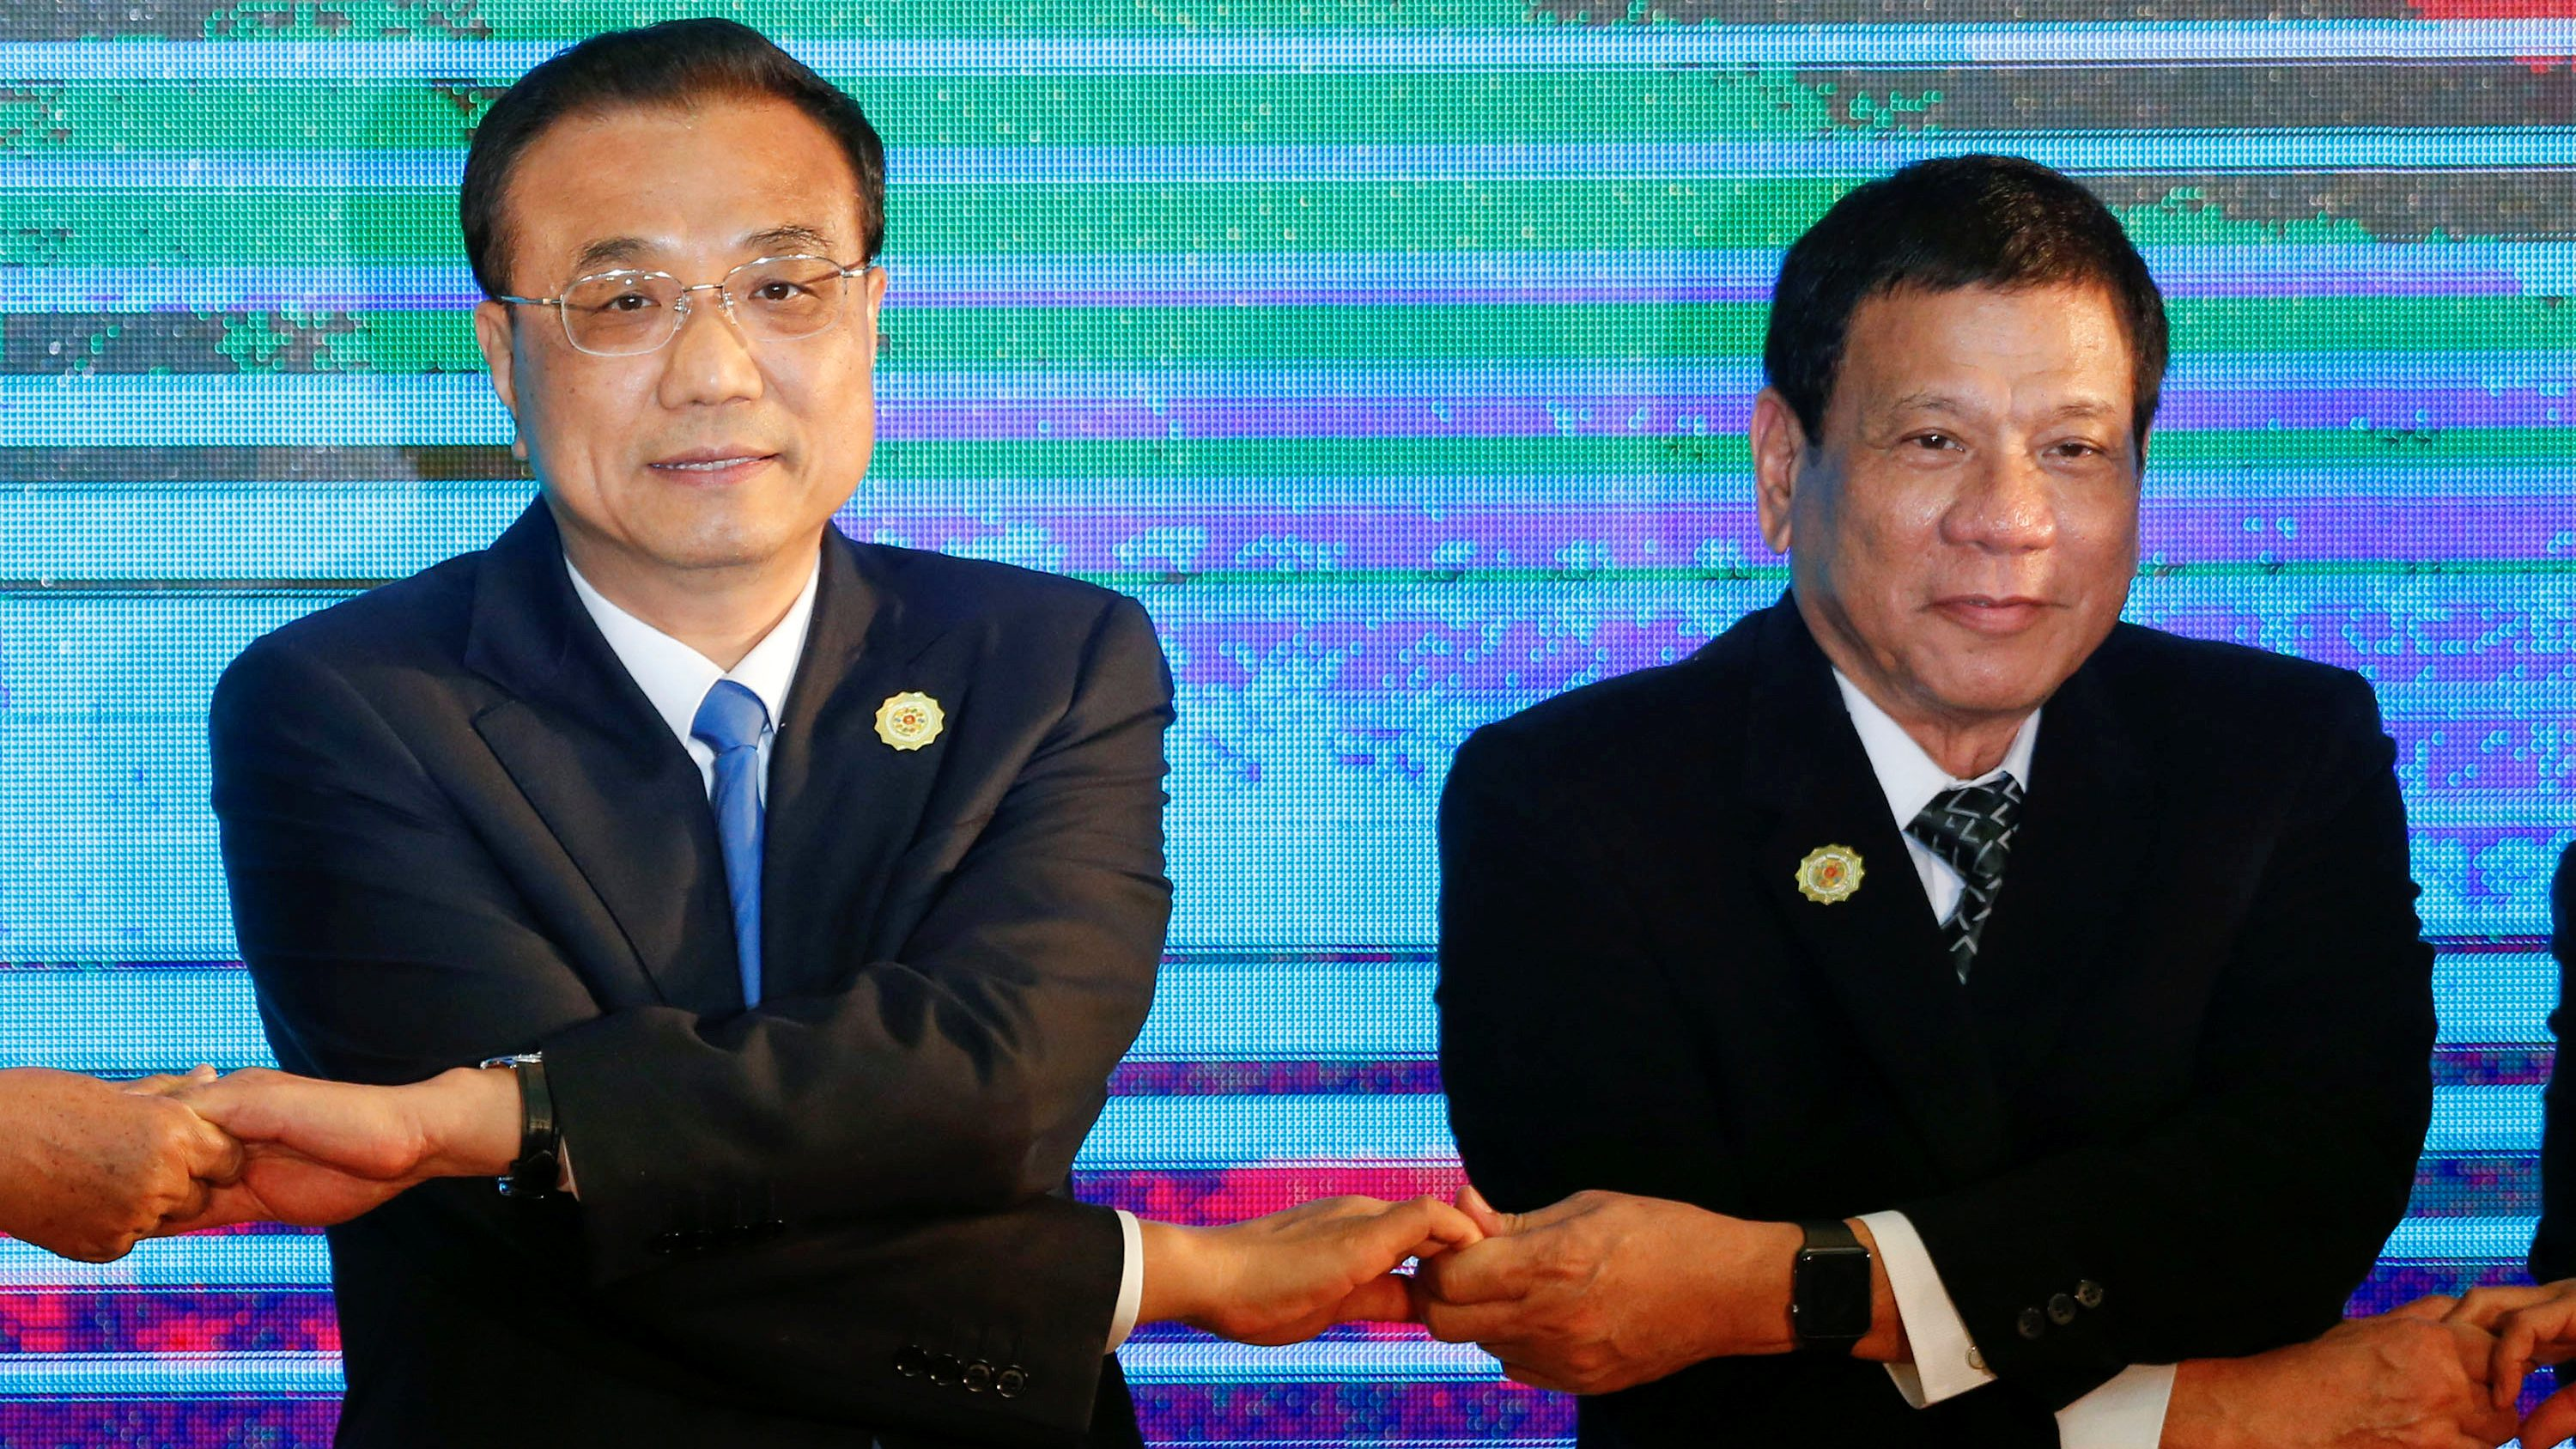 Chinese Premier Li Keqiang and Philippines President Rodrigo Duterte